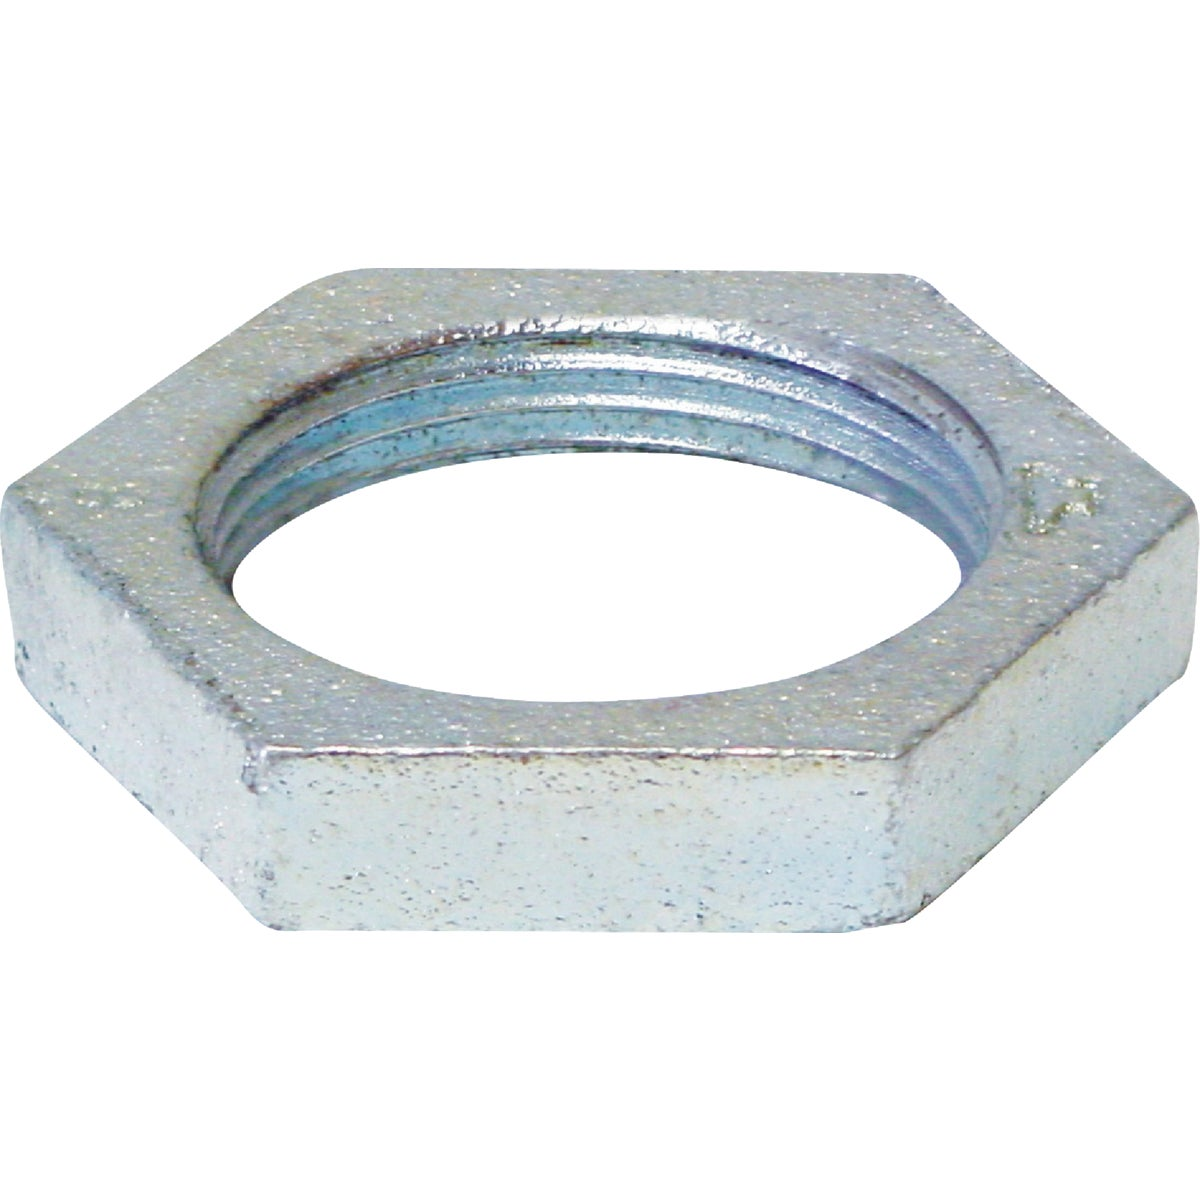 "3/8"" GALV LOCKNUT - 8700162459 by Anvil International"